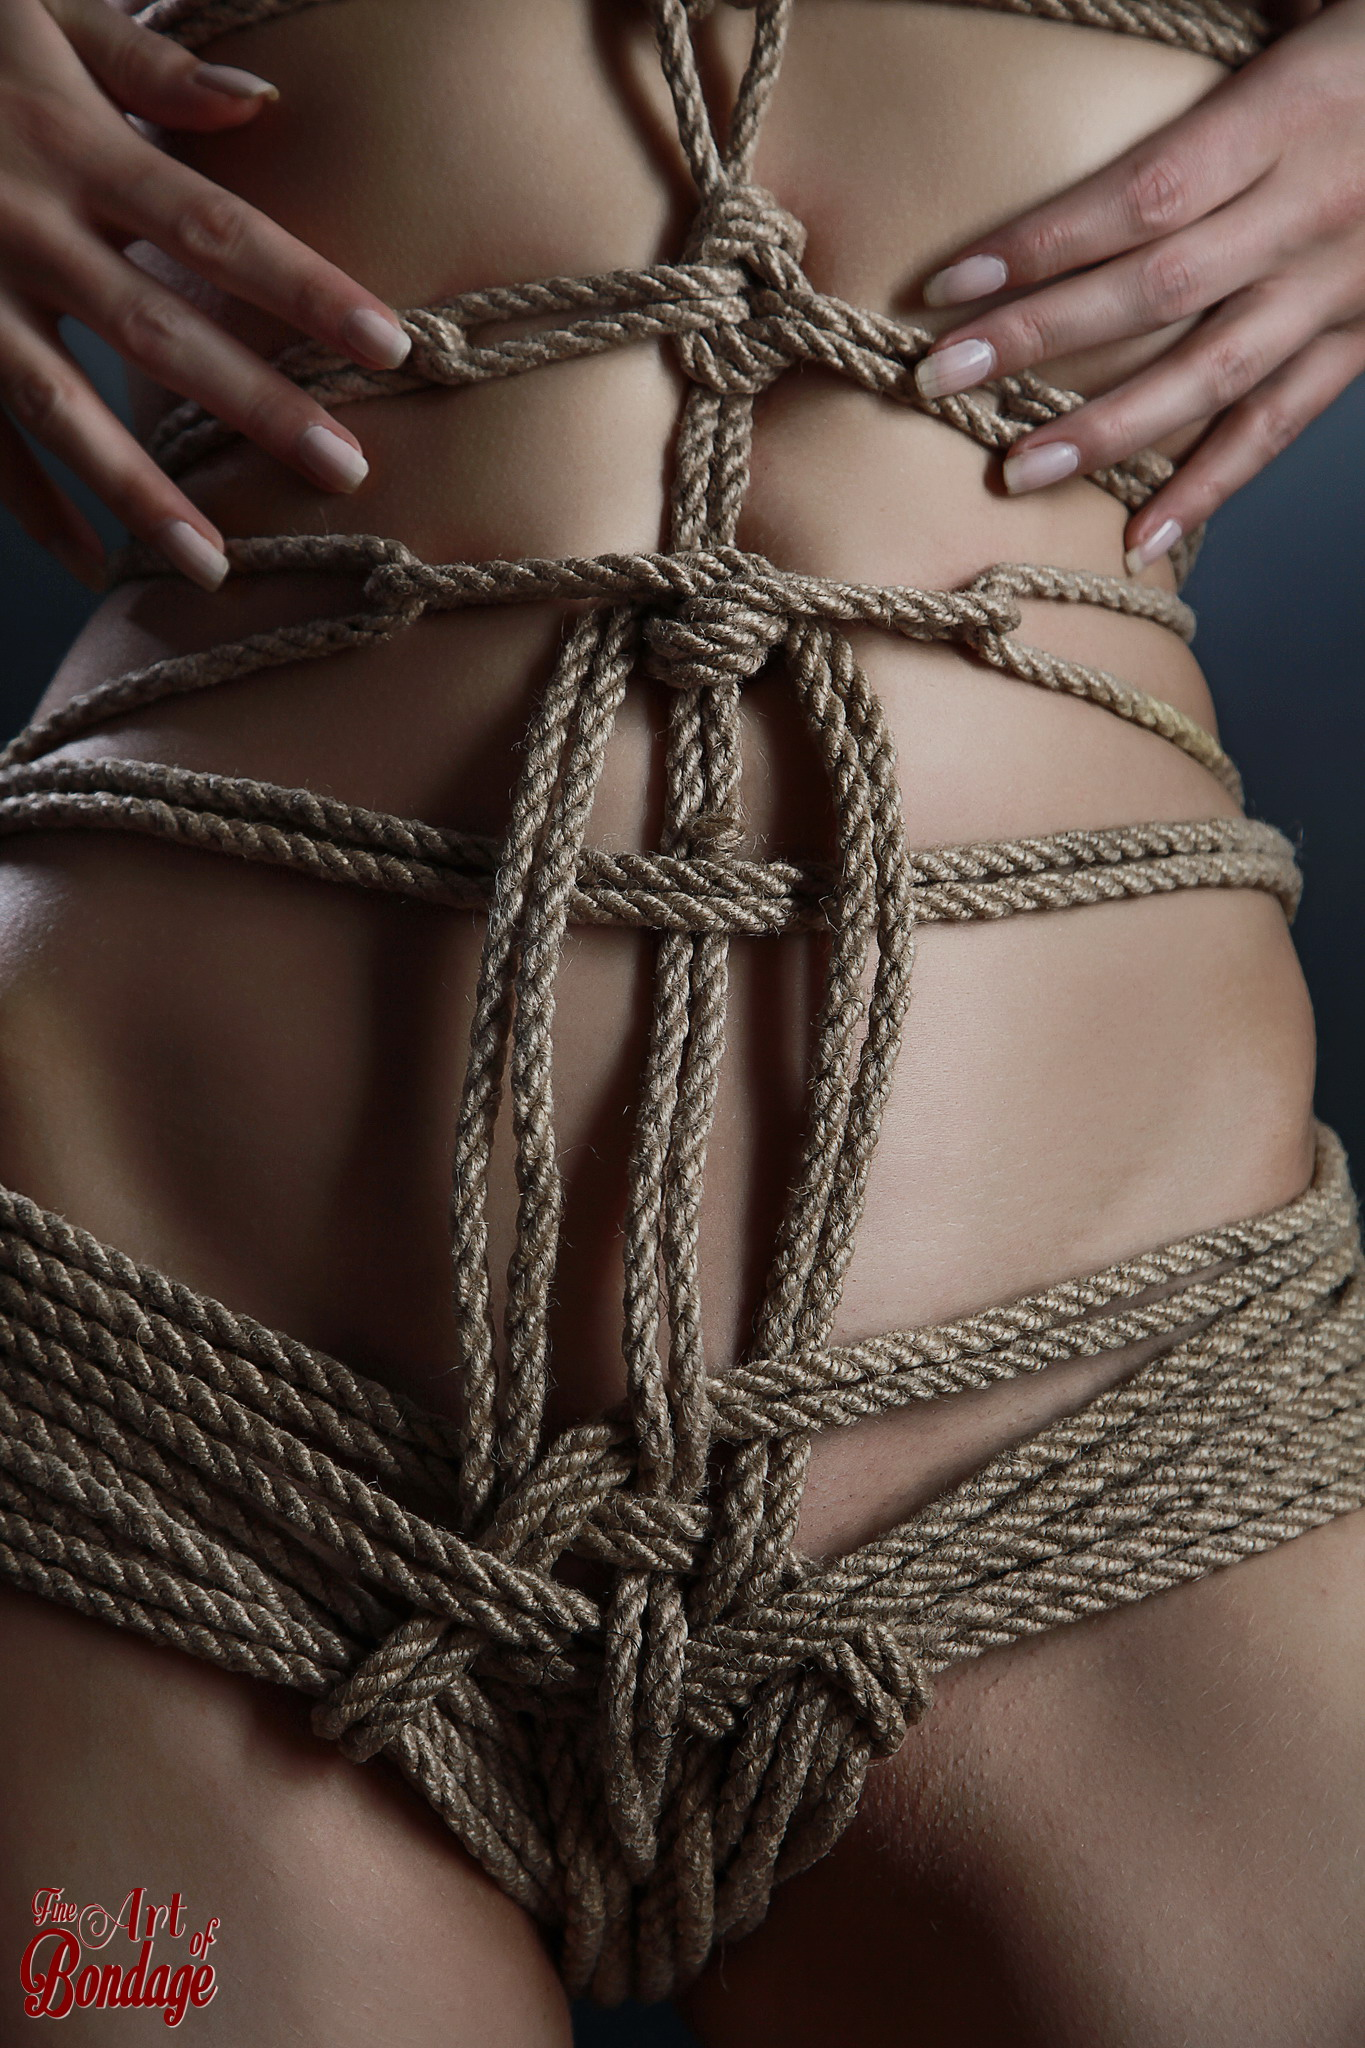 Close up bondage